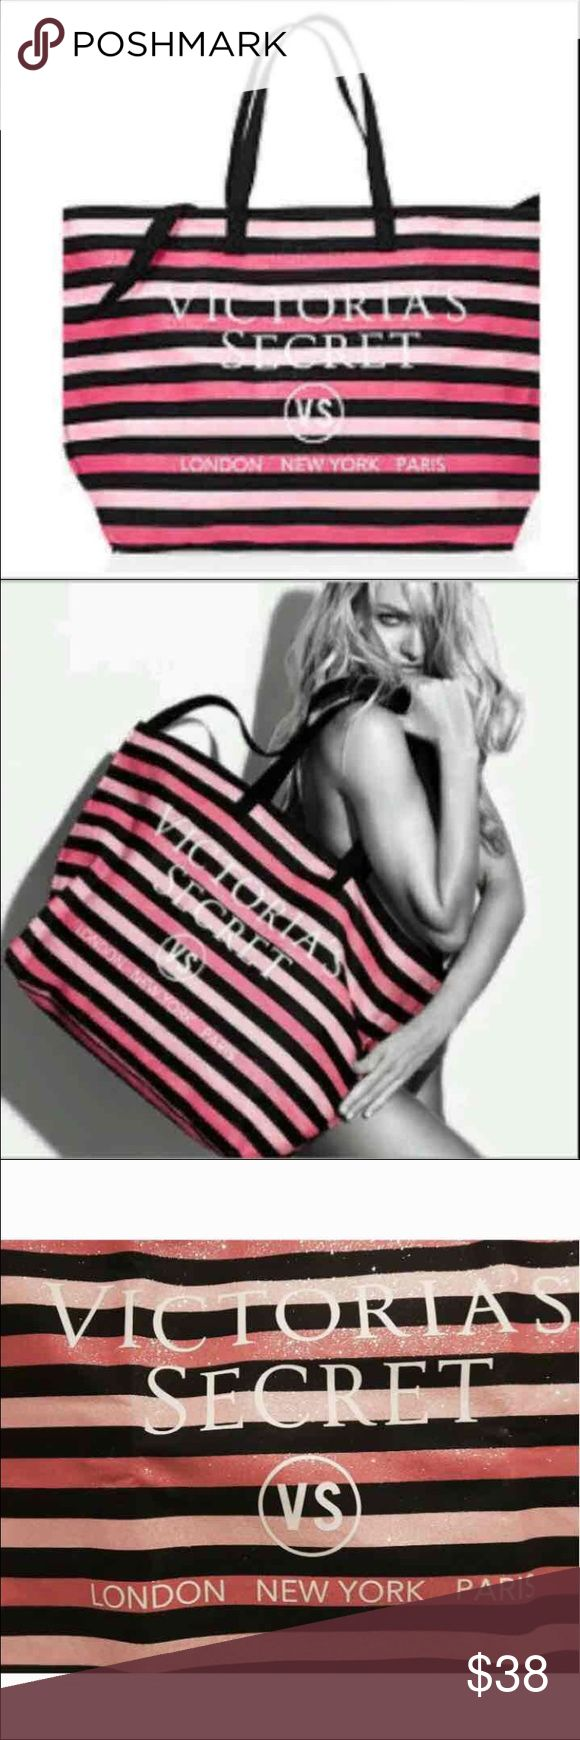 """VS Glitter Shimmer Signature Striped Weekender Bag New in package from an online order   Victoria's Secret Shimmer Signature Striped Weekender Tote   Beautiful Bag...Glitter & Sparkly  Pink & Black Striped  Measures approx 26""""L x 7""""W x 26""""H  Zip top closure   No trades Victoria's Secret Bags Totes"""